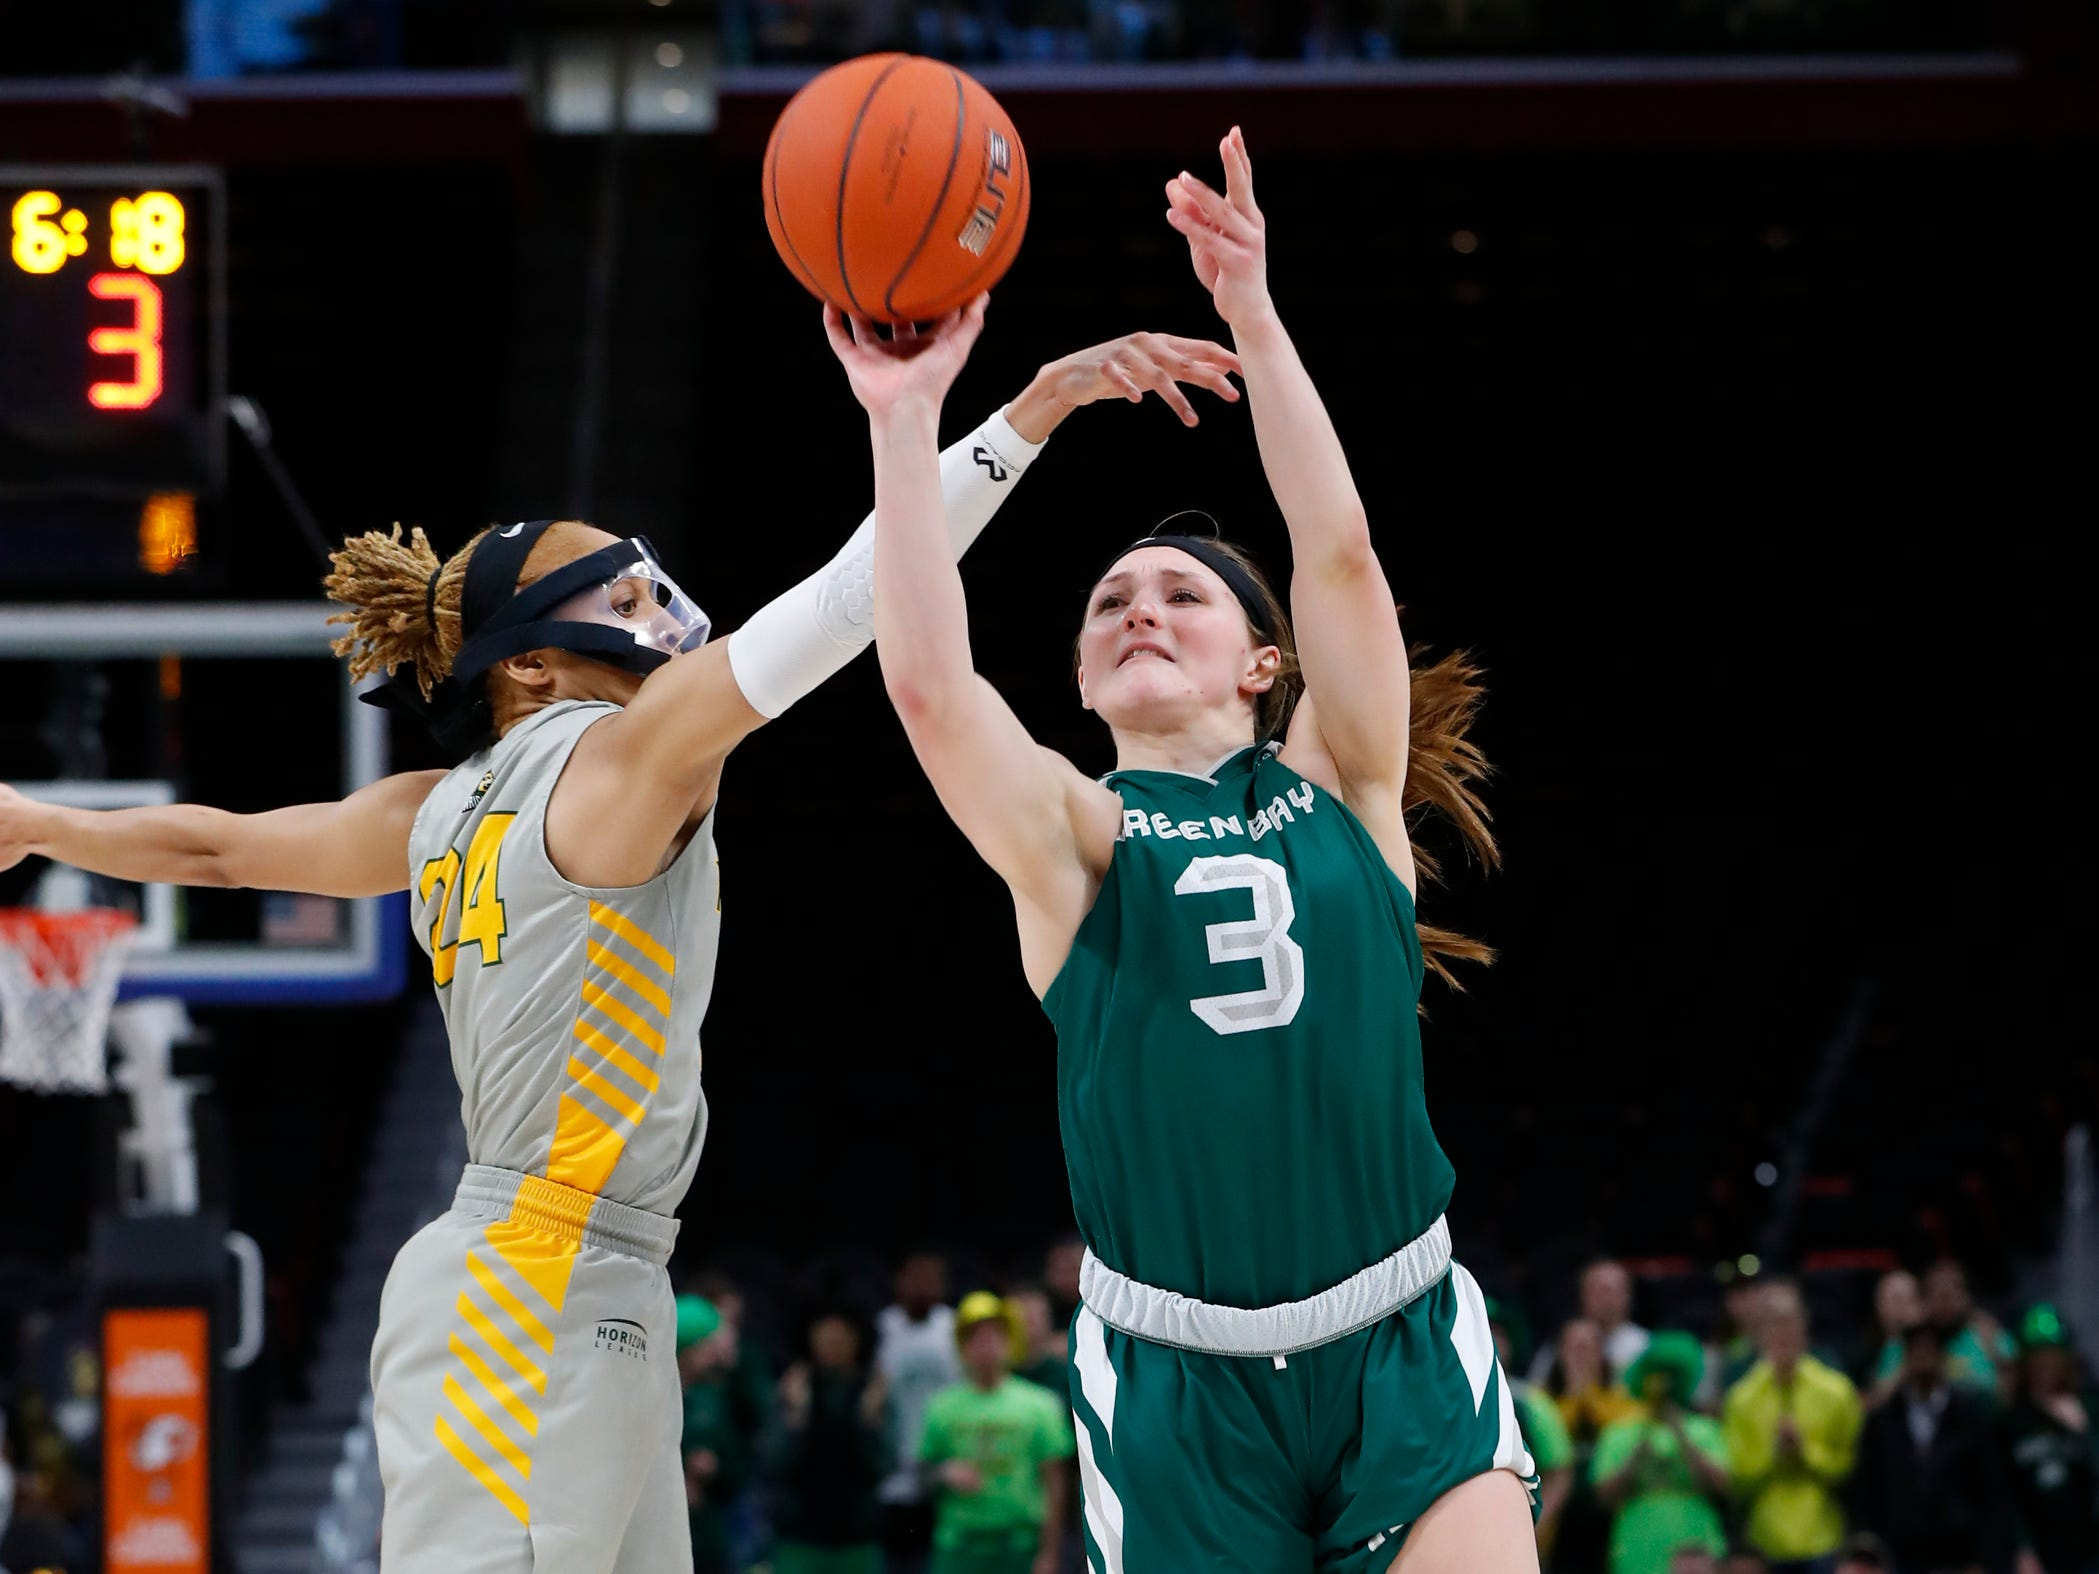 Green Bay guard Frankie Wurtz (3) shoots as Wright State guard Michal Miller (24) defends.